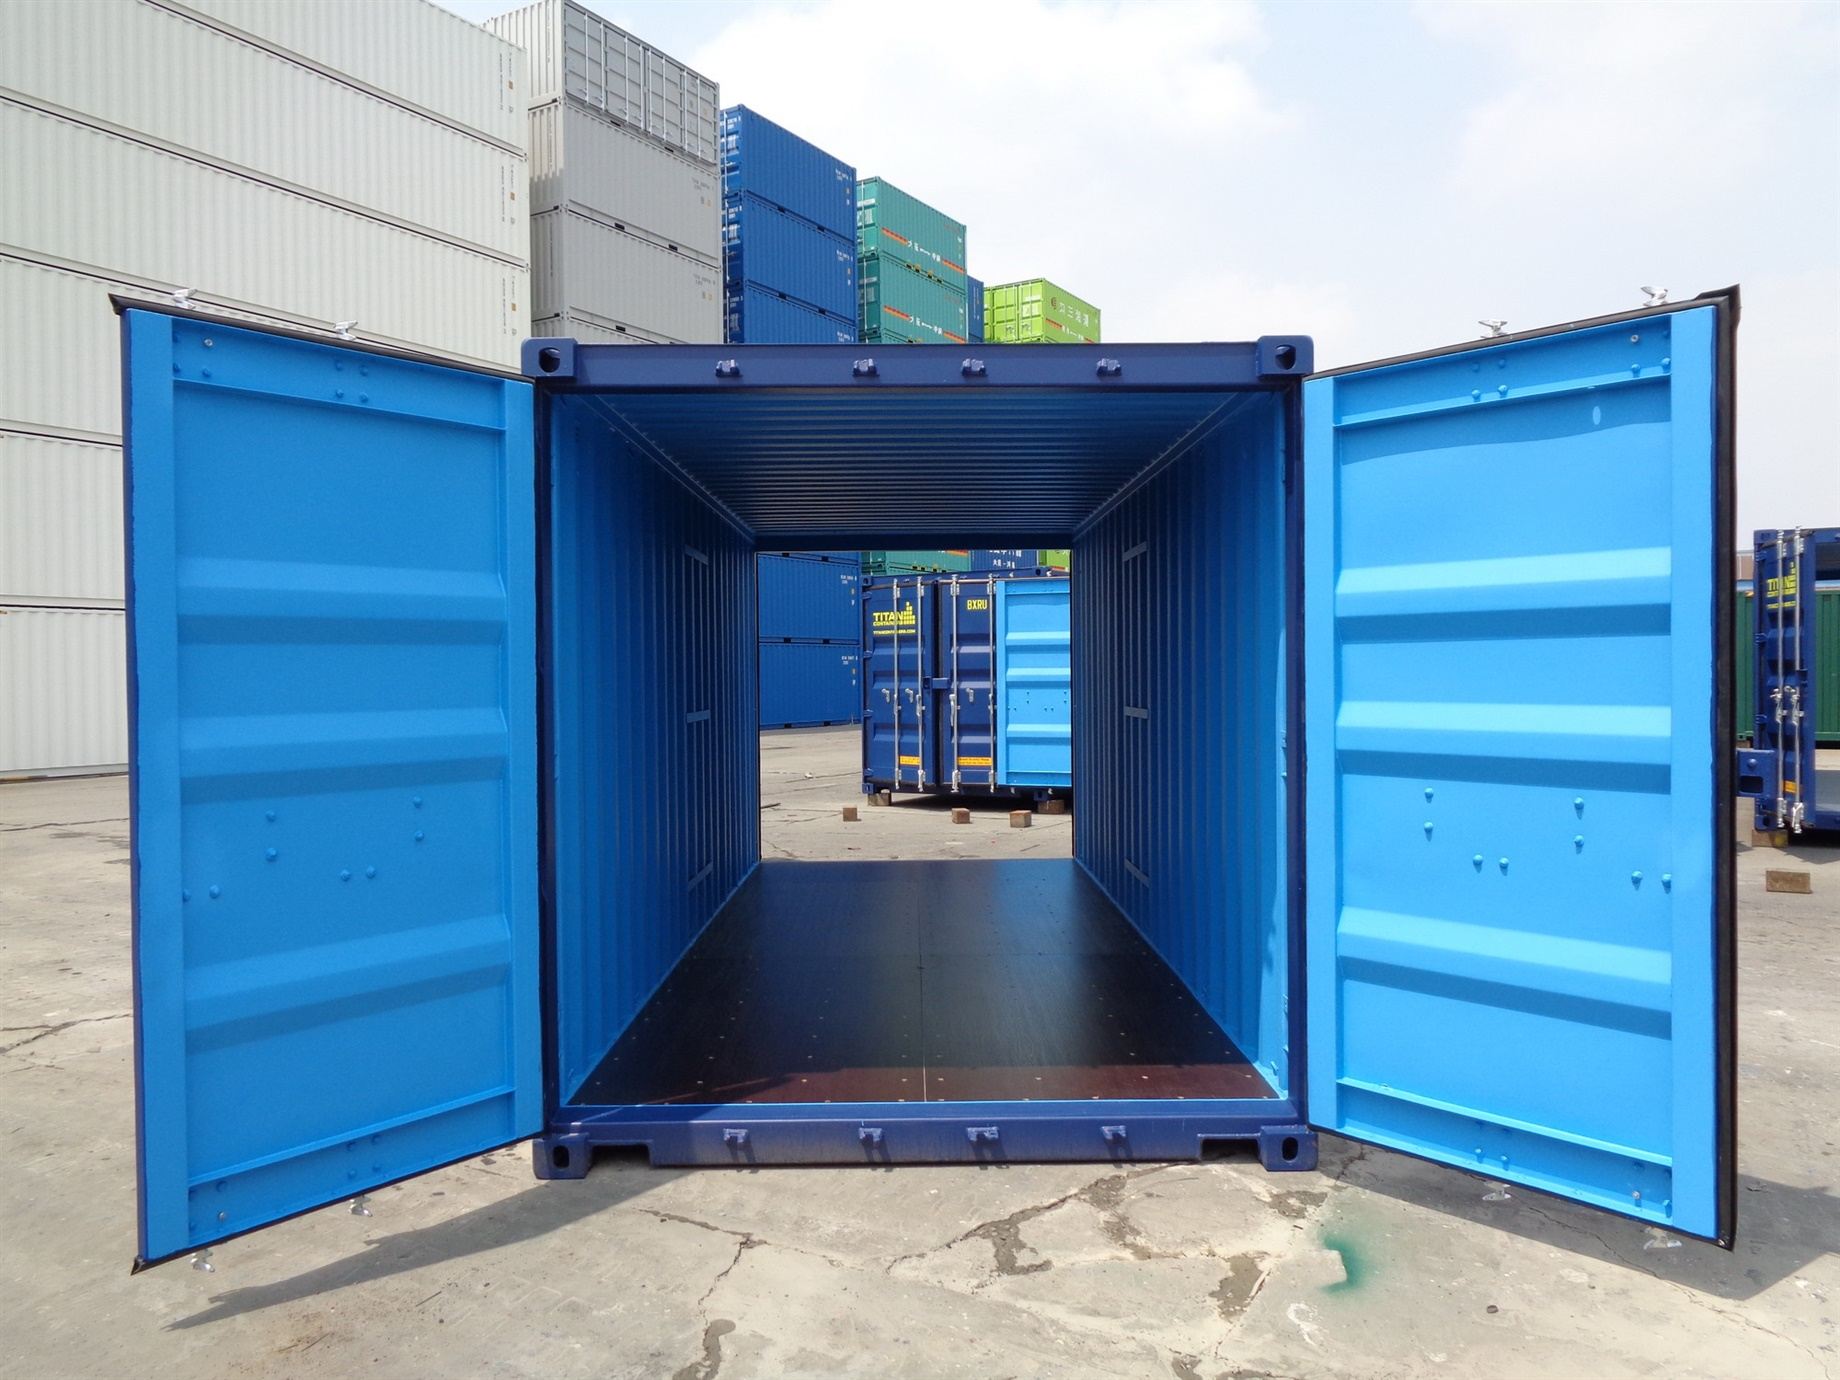 Container with doors on each end